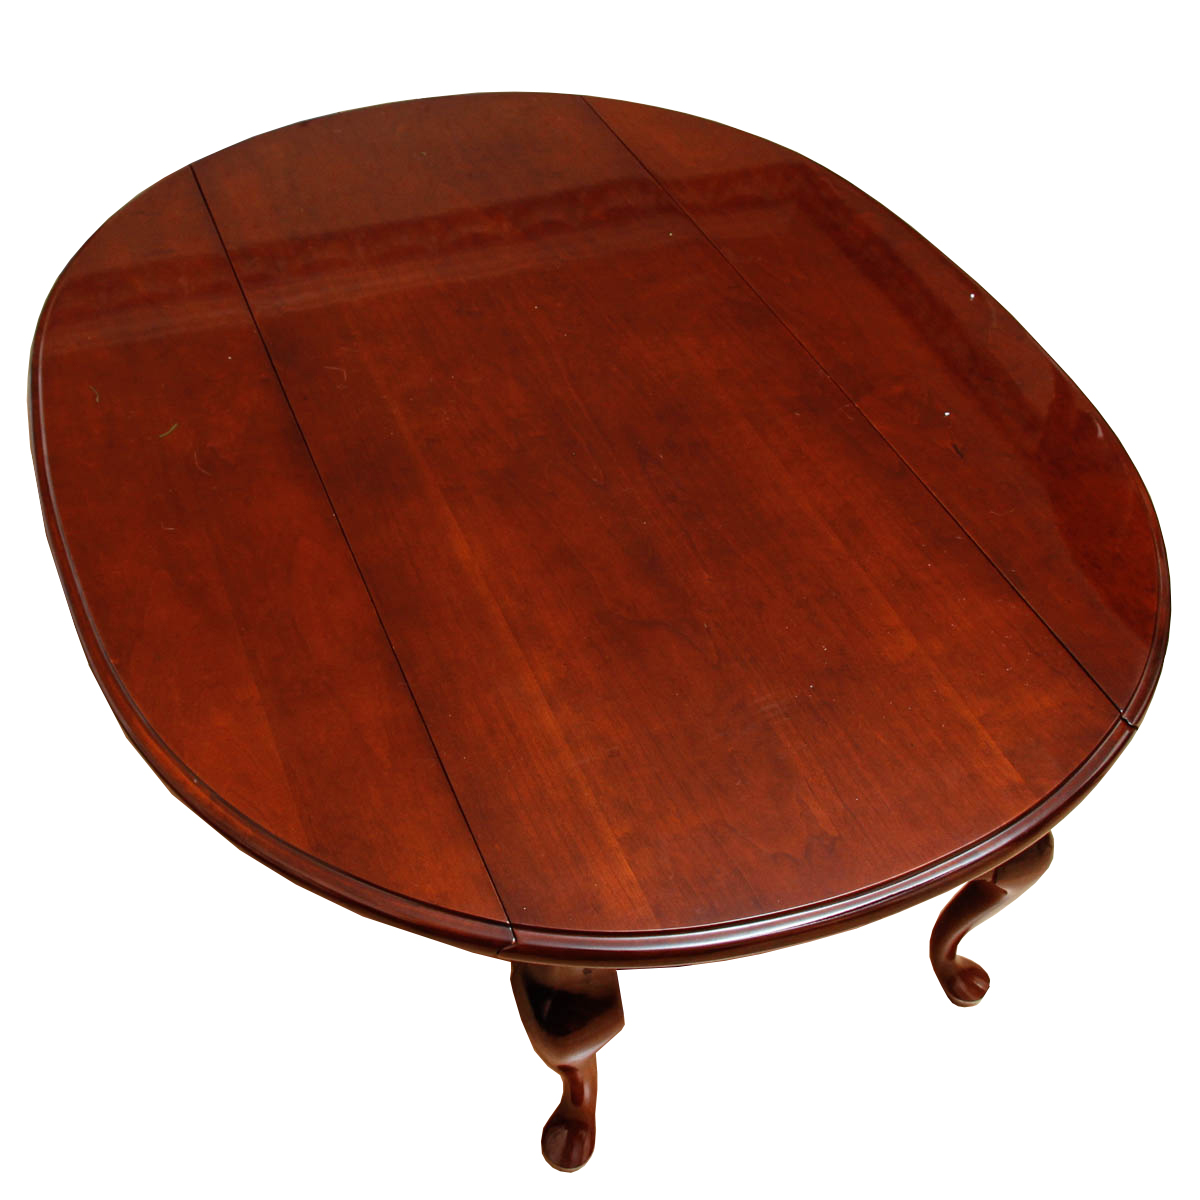 Vintage Drop Leaf Coffee Table EBTH